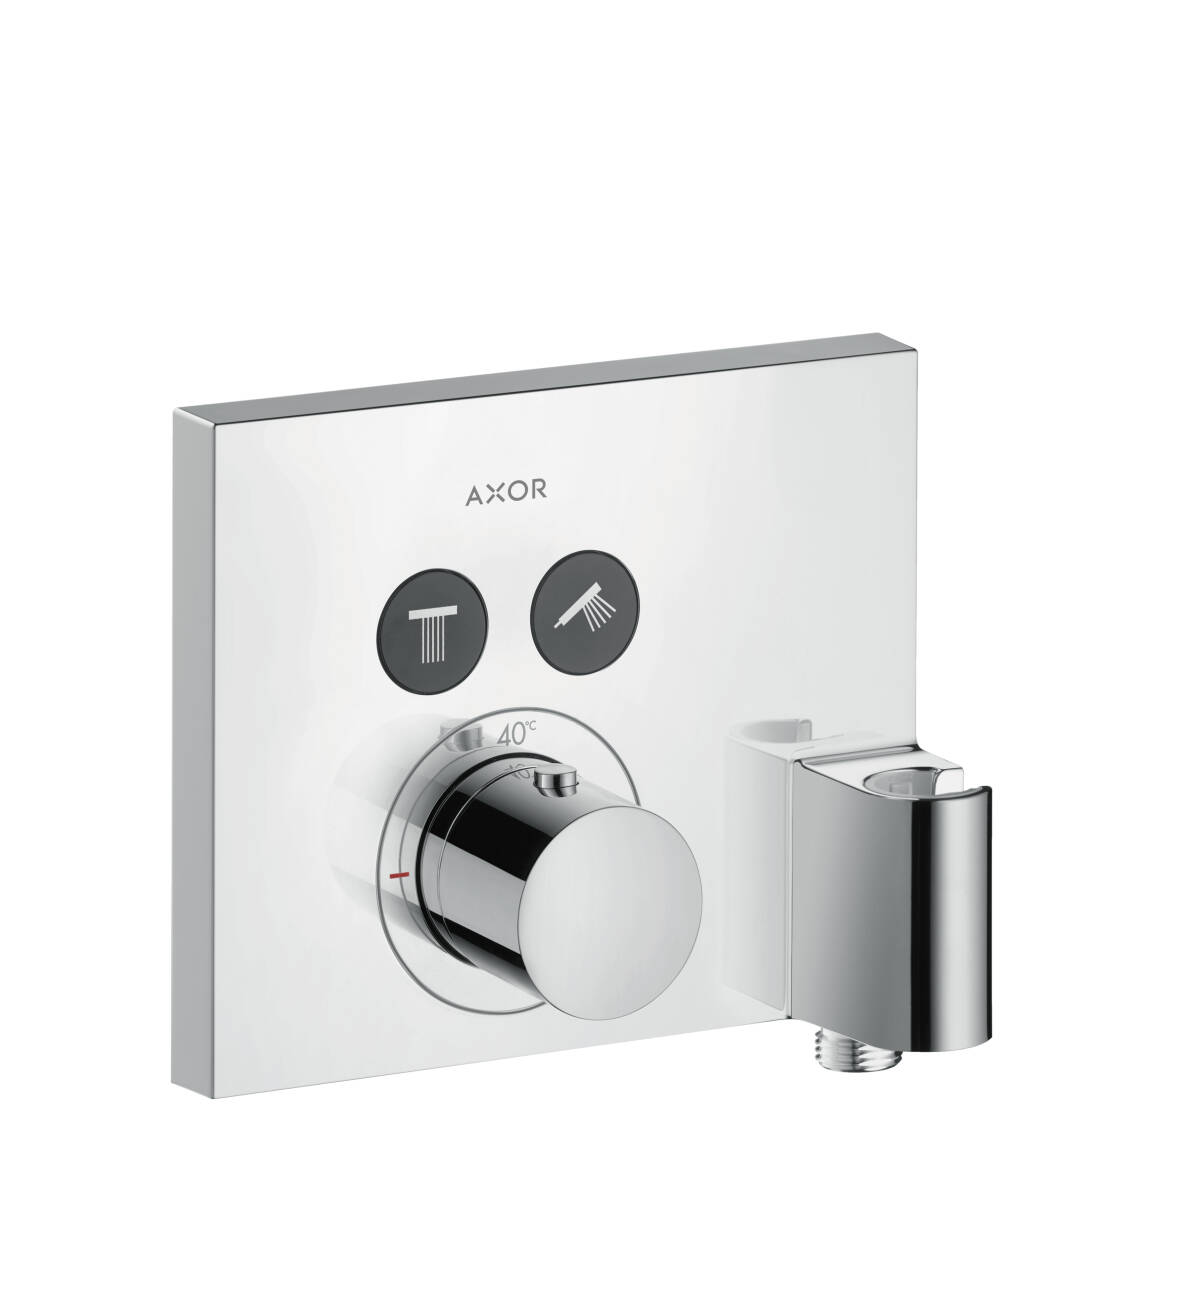 Thermostat for concealed installation square for 2 functions with wall outlet and shower holder, Chrome, 36712000